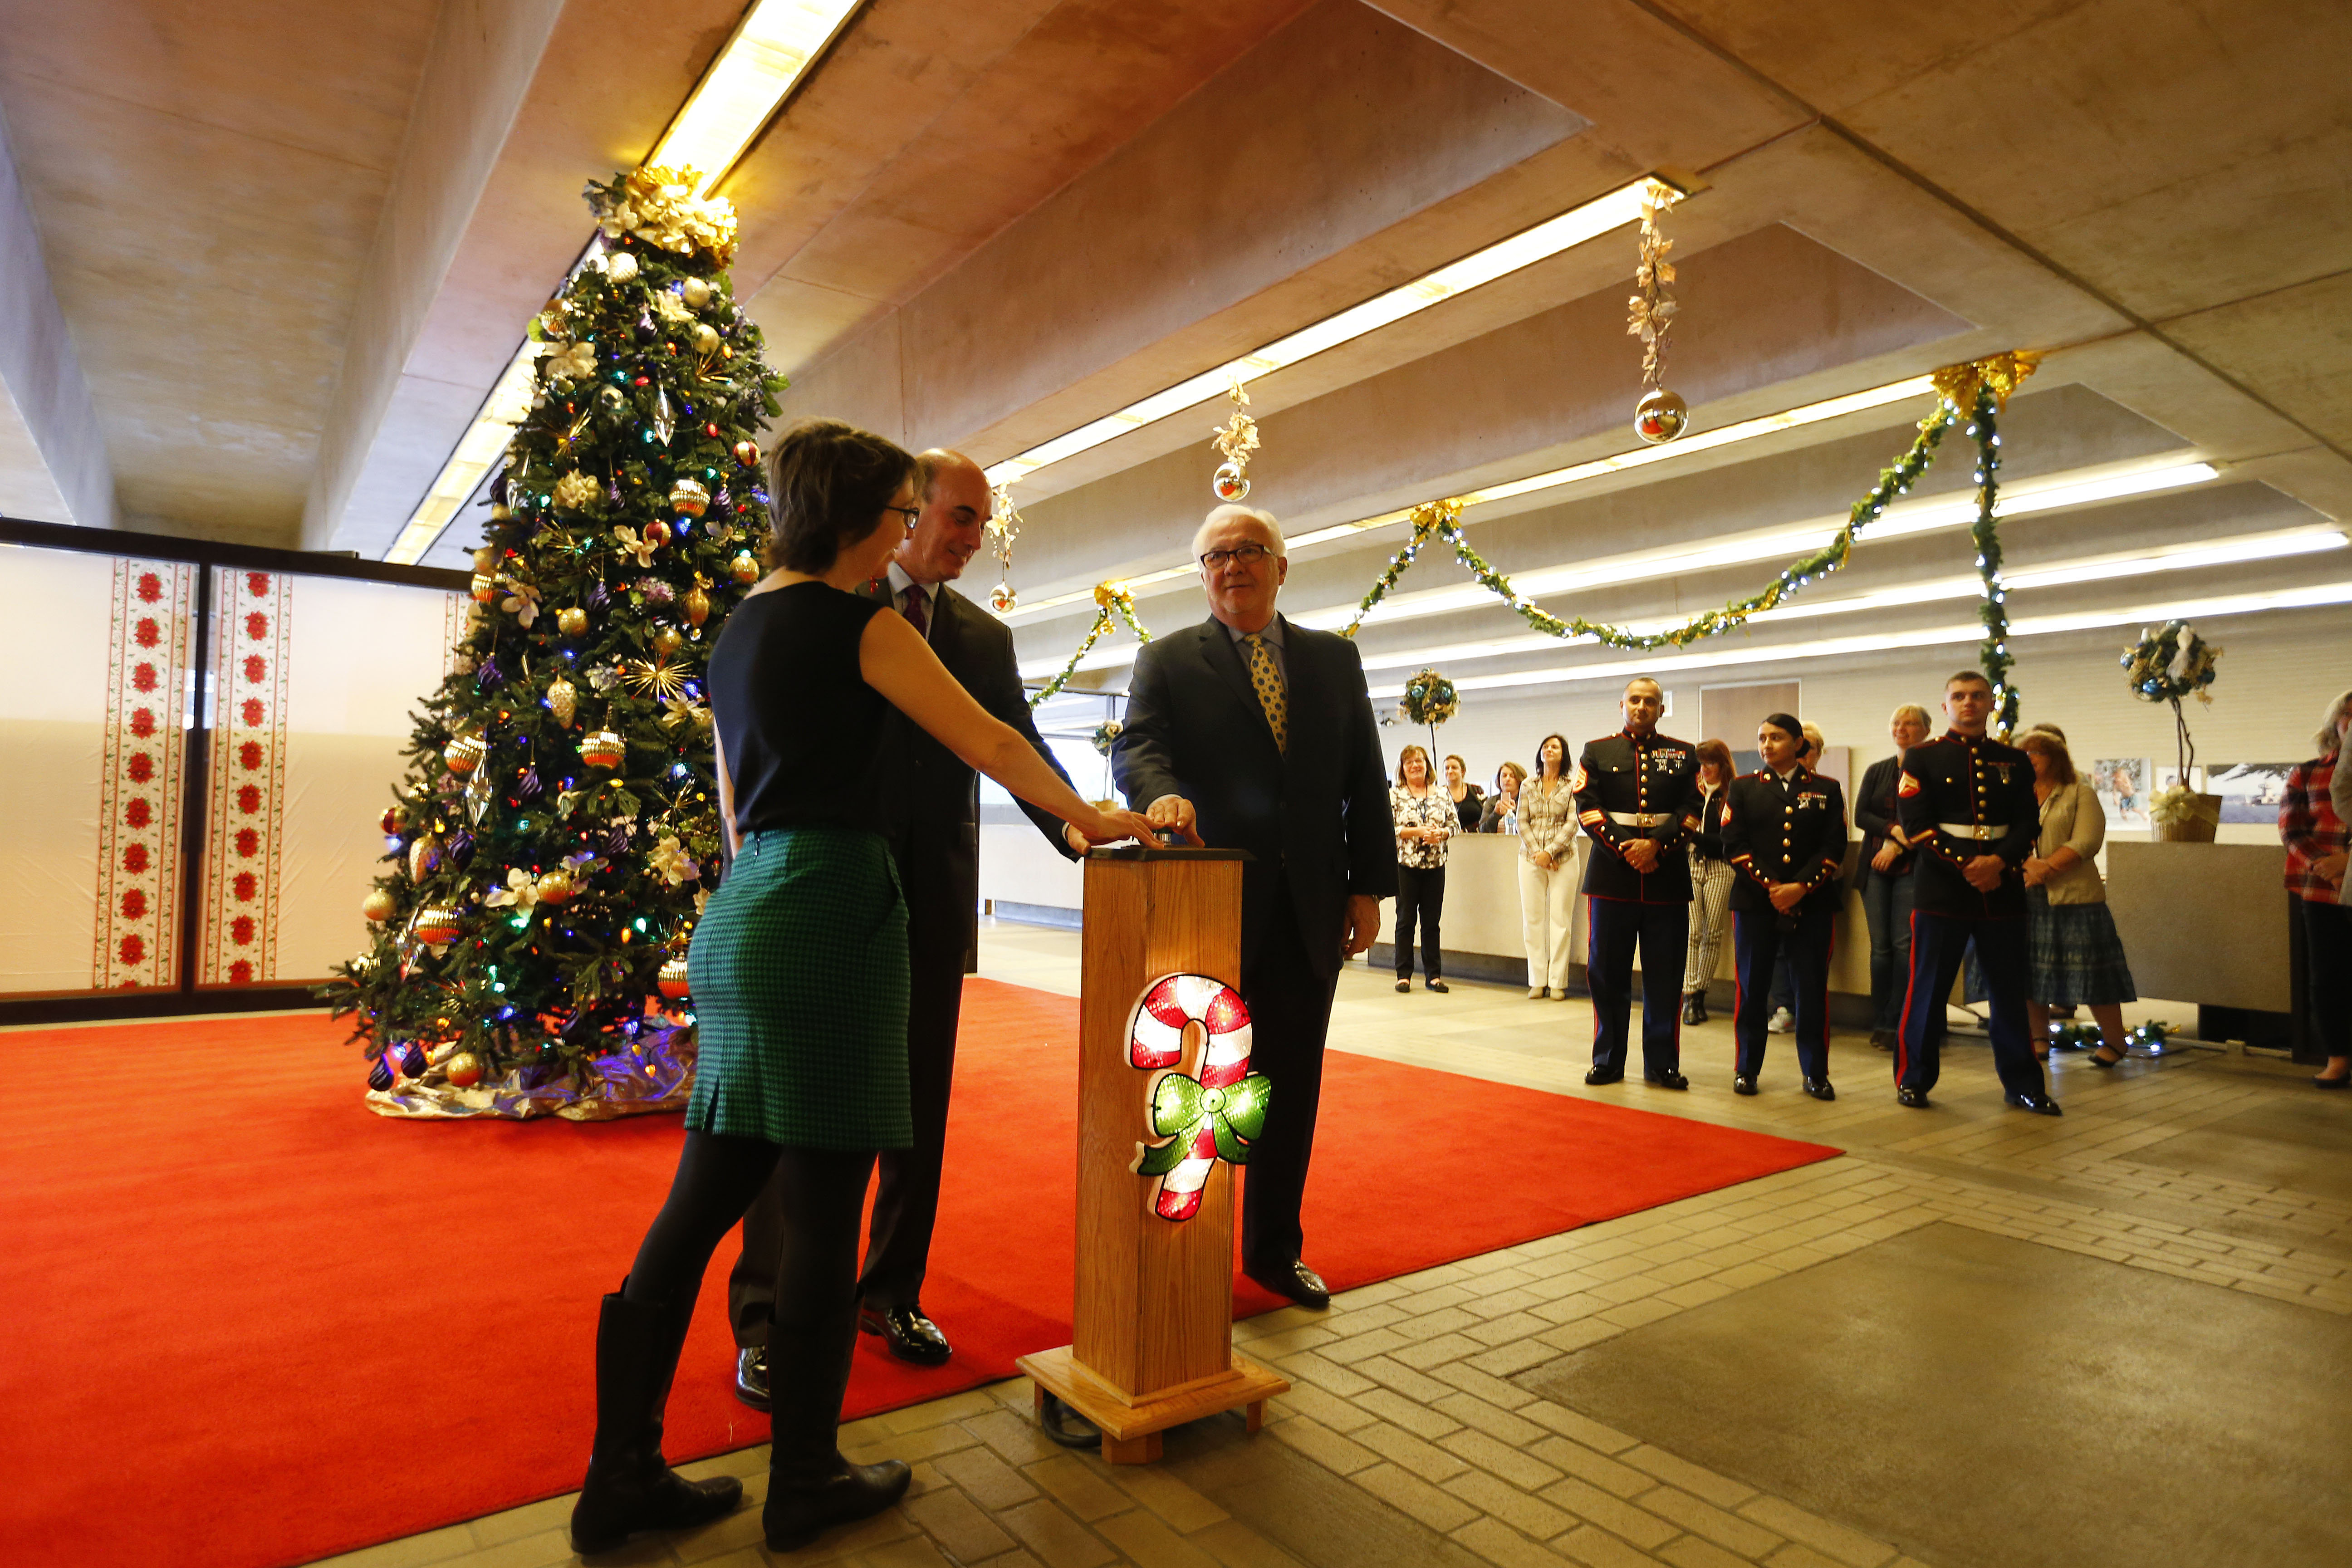 Buffalo News Publisher Warren Colville, right, United Way of Buffalo & Erie County President and CEO Michael Weiner, center, and Olmstead Center for Sight's Kelly Dodd, left, light the Christmas tree kicking off the News Neediest program in the lobby at The Buffalo News in Buffalo Friday, Nov. 18, 2016. (Mark Mulville/The Buffalo News)